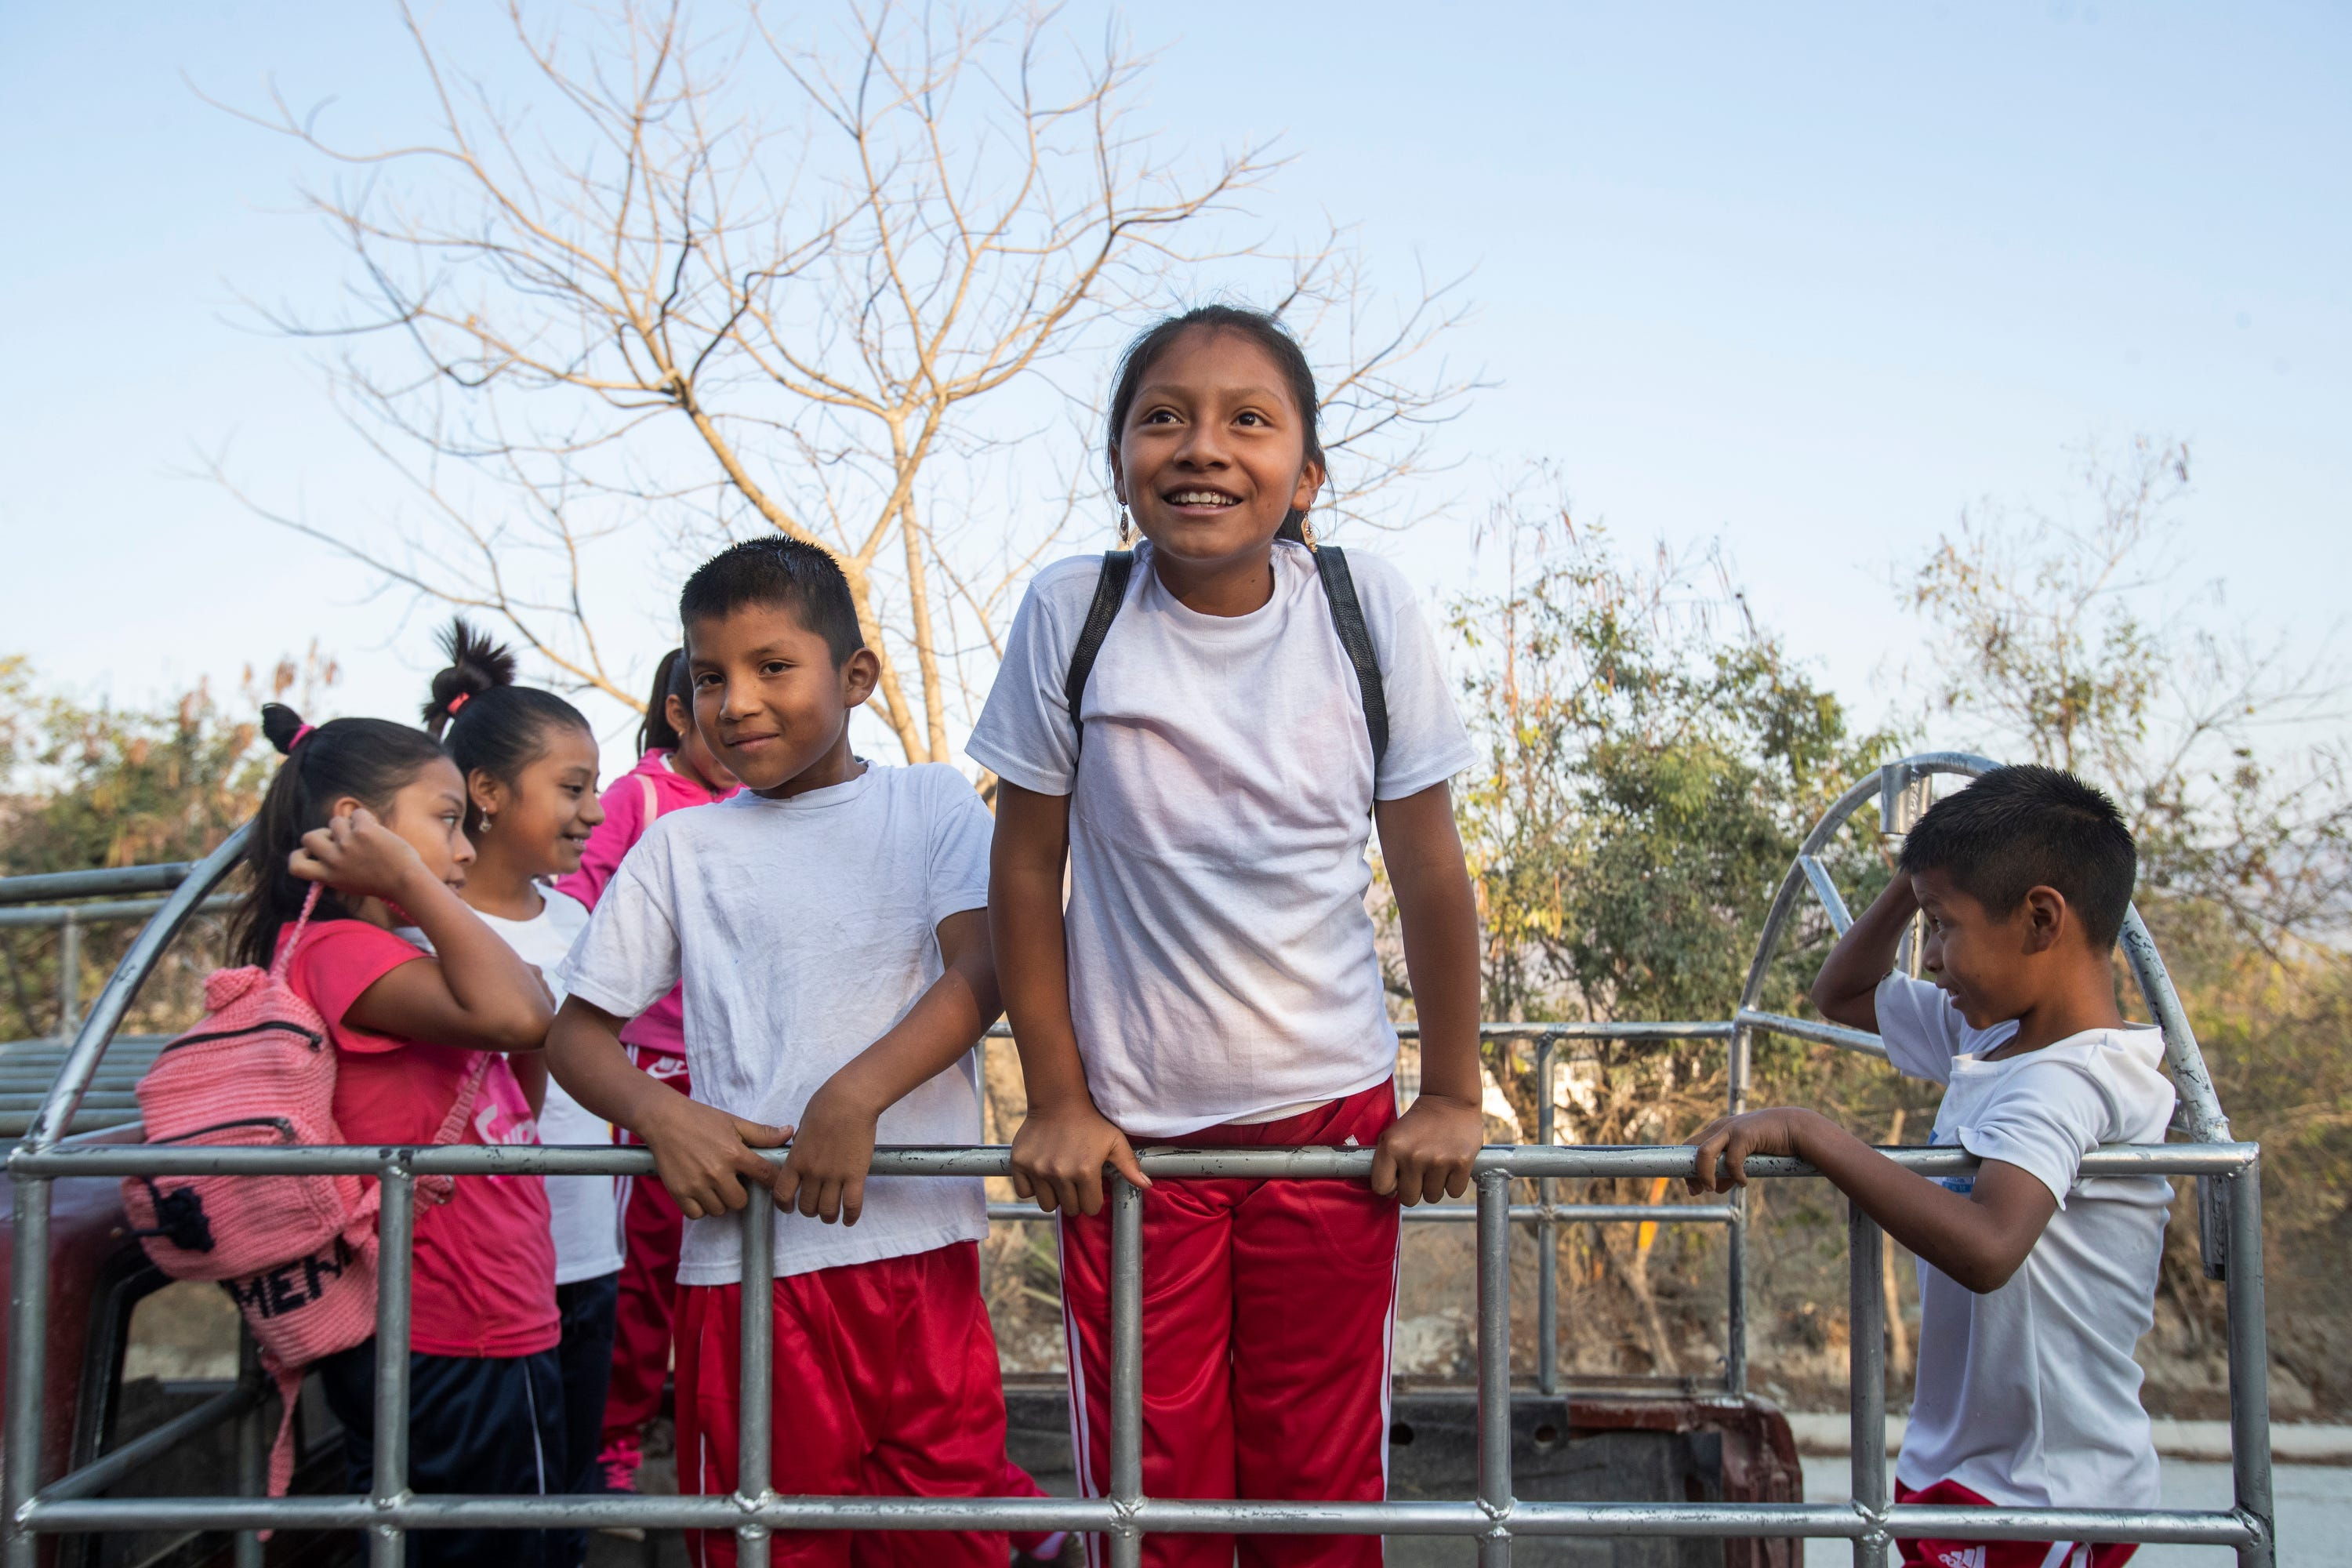 Melissa Sical is all smiles as she gets ready to attend a sporting competition with her schoolmates from her village in Baja Verapaz, Guatemala, in early March.